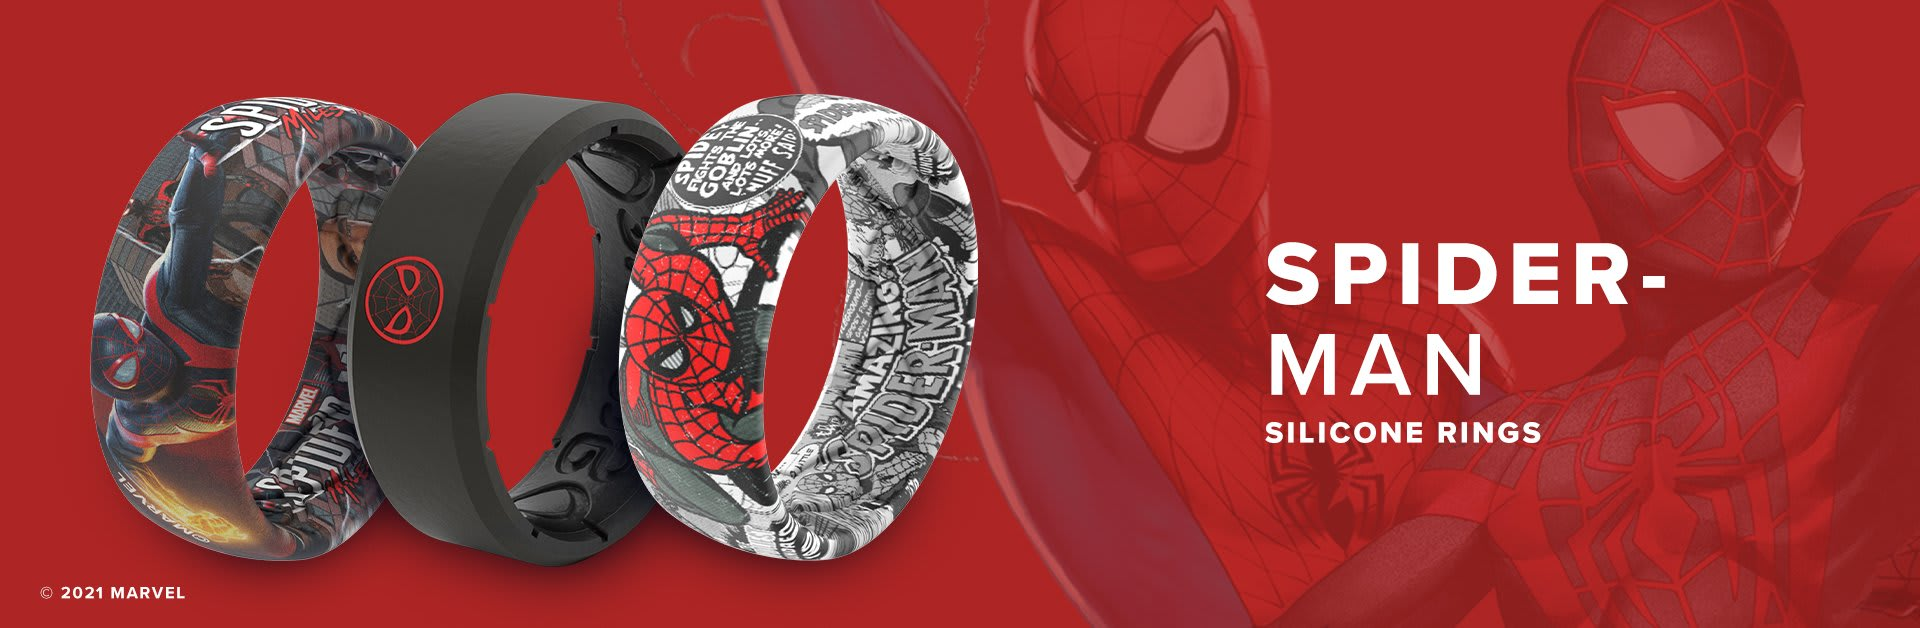 Spider-Man Silicone Rings